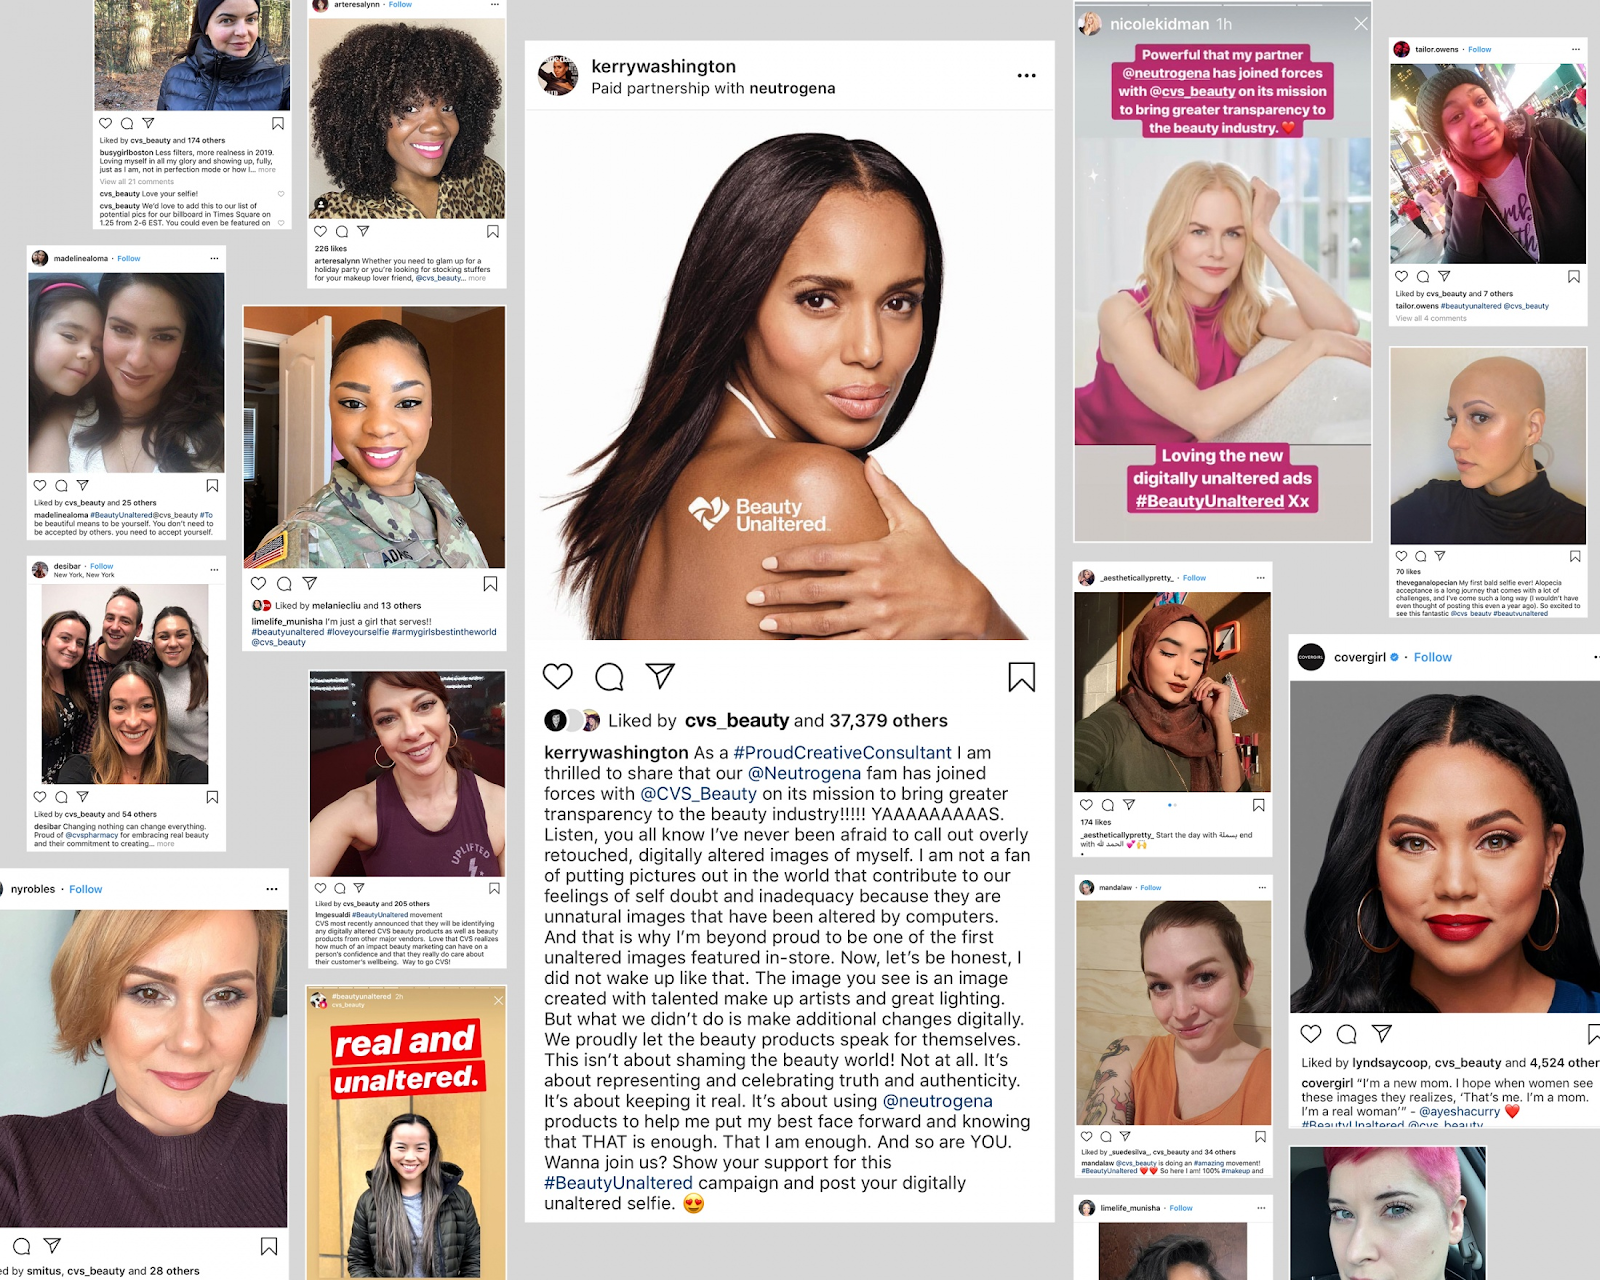 Screenshots of social posts from the Clio Winning Beauty Unaltered Campaign